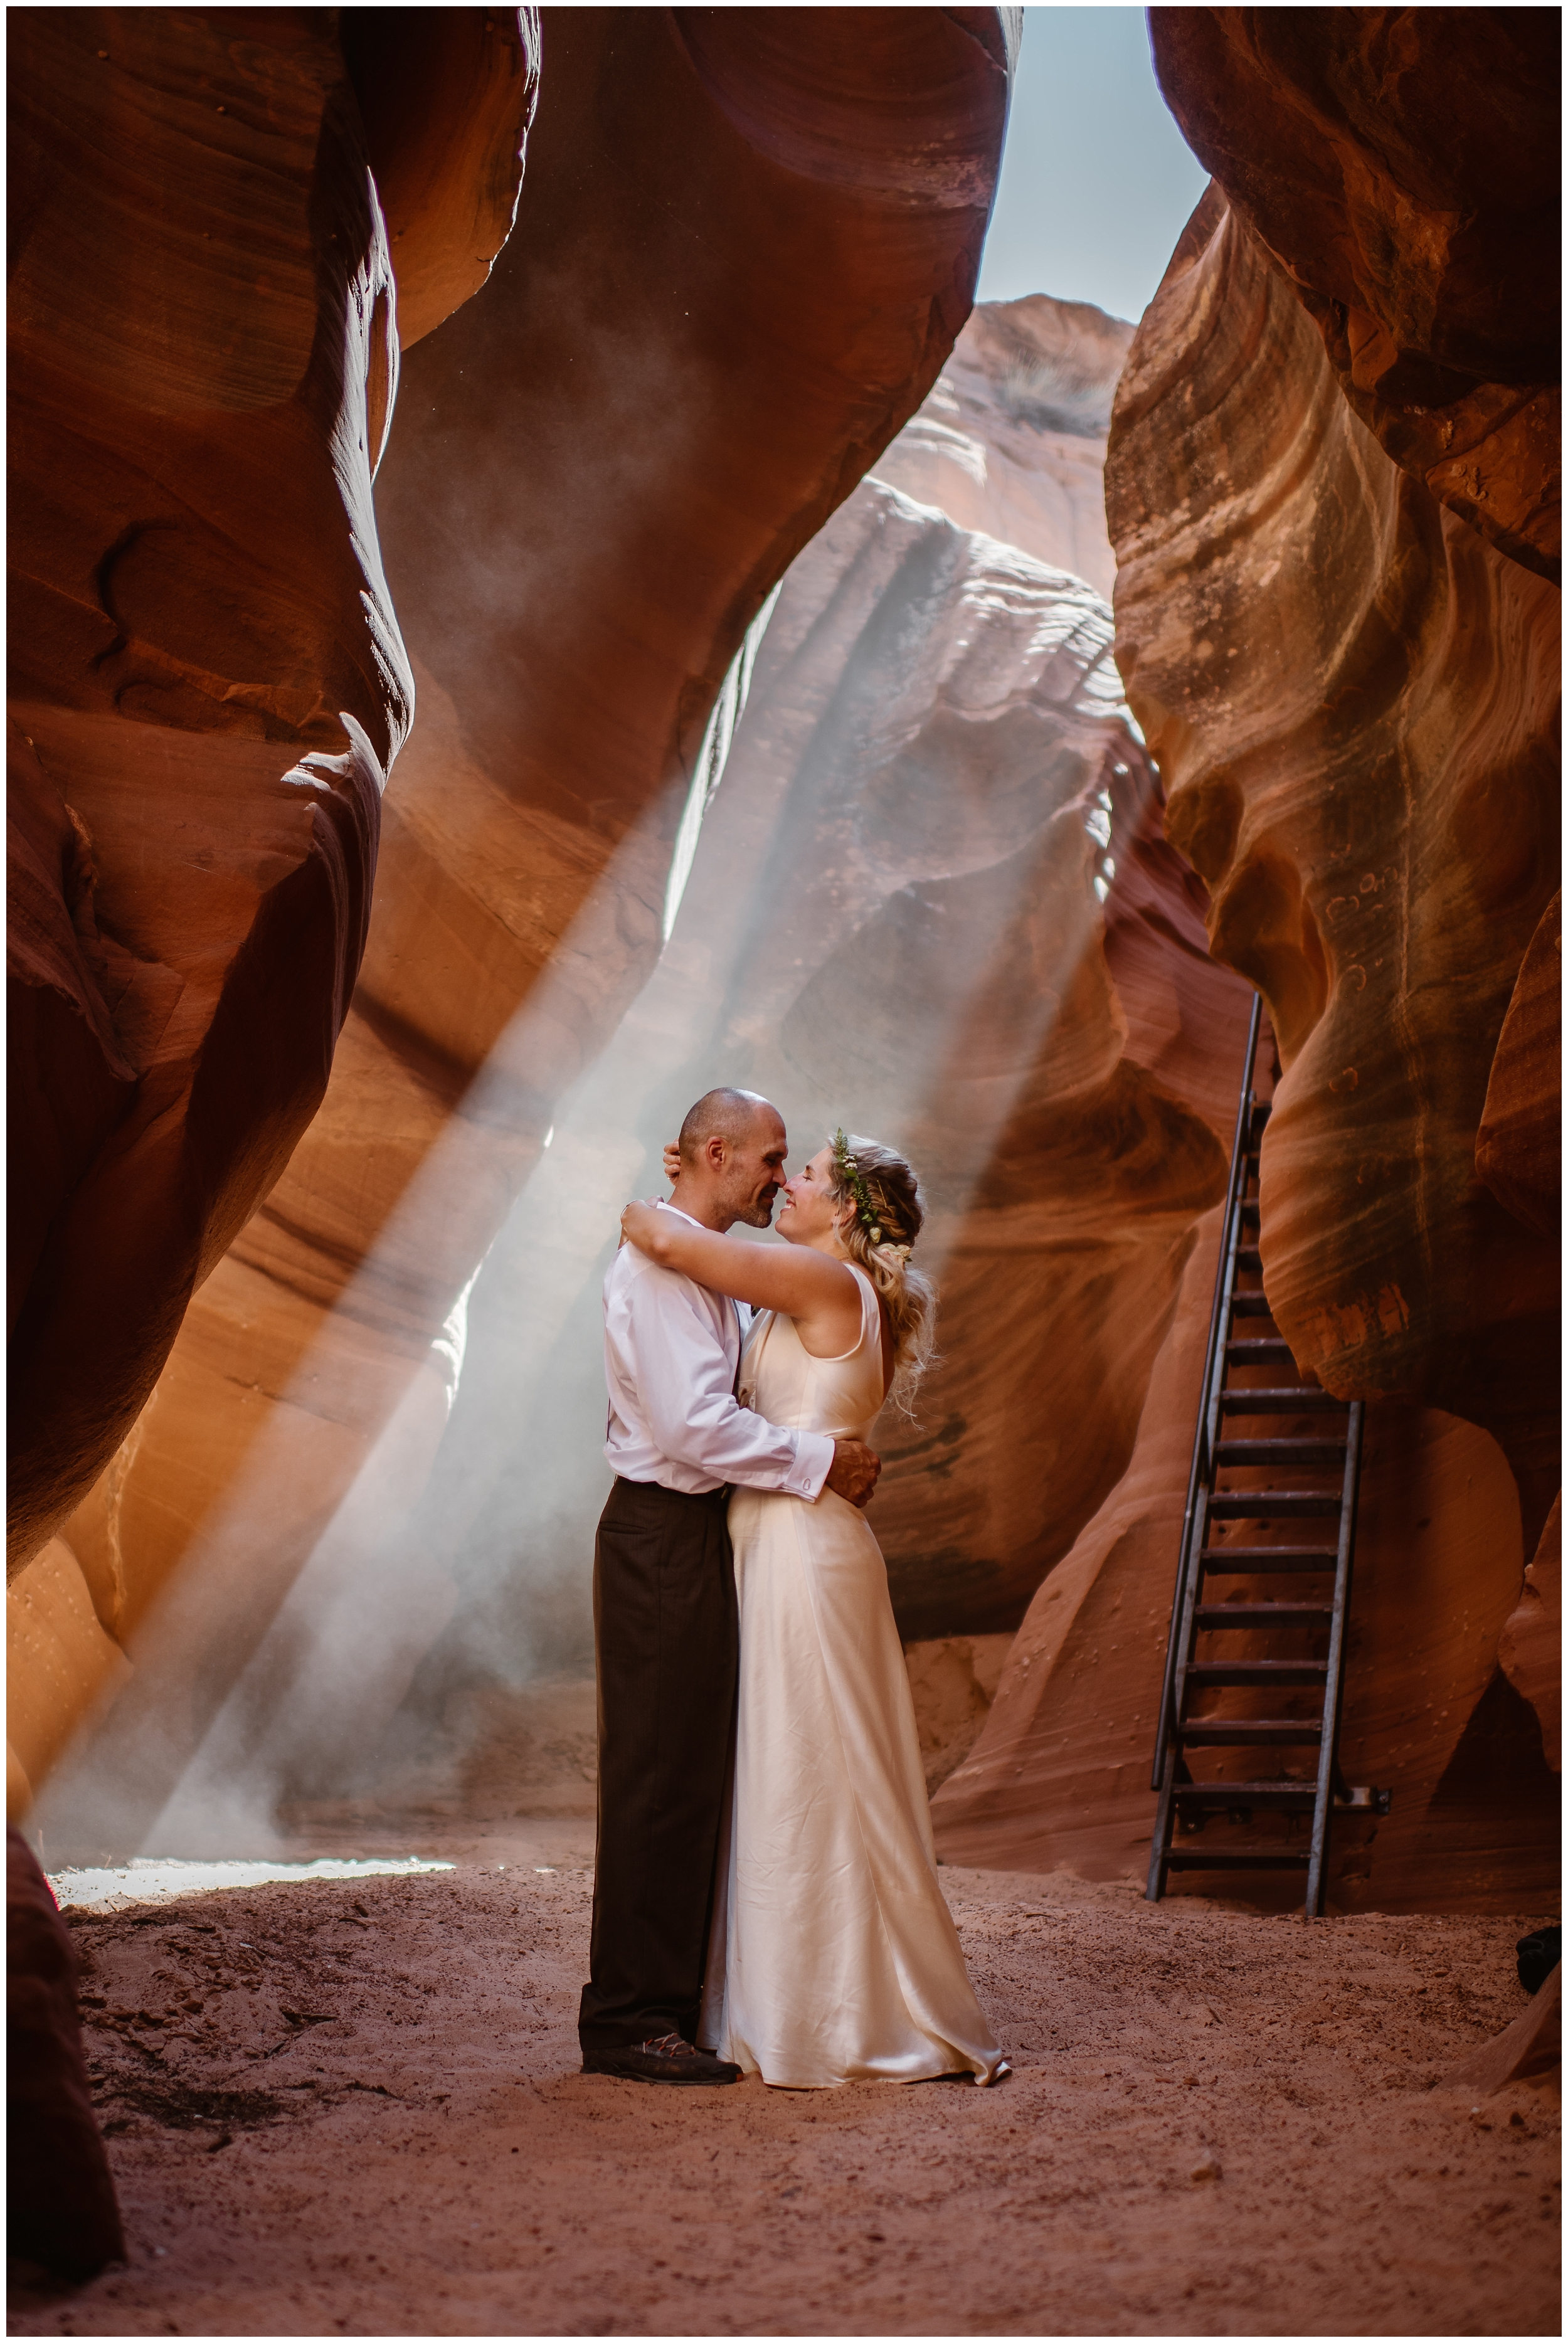 A bride and groom pull each other close in a red and orange slot canyon. In the background, a ladder can be seen leading down into the canyon, beautiful beams of light are hitting specific spots in the canyon. This is one of the most beautiful elopement locations in the world— but there are so many to choose from!